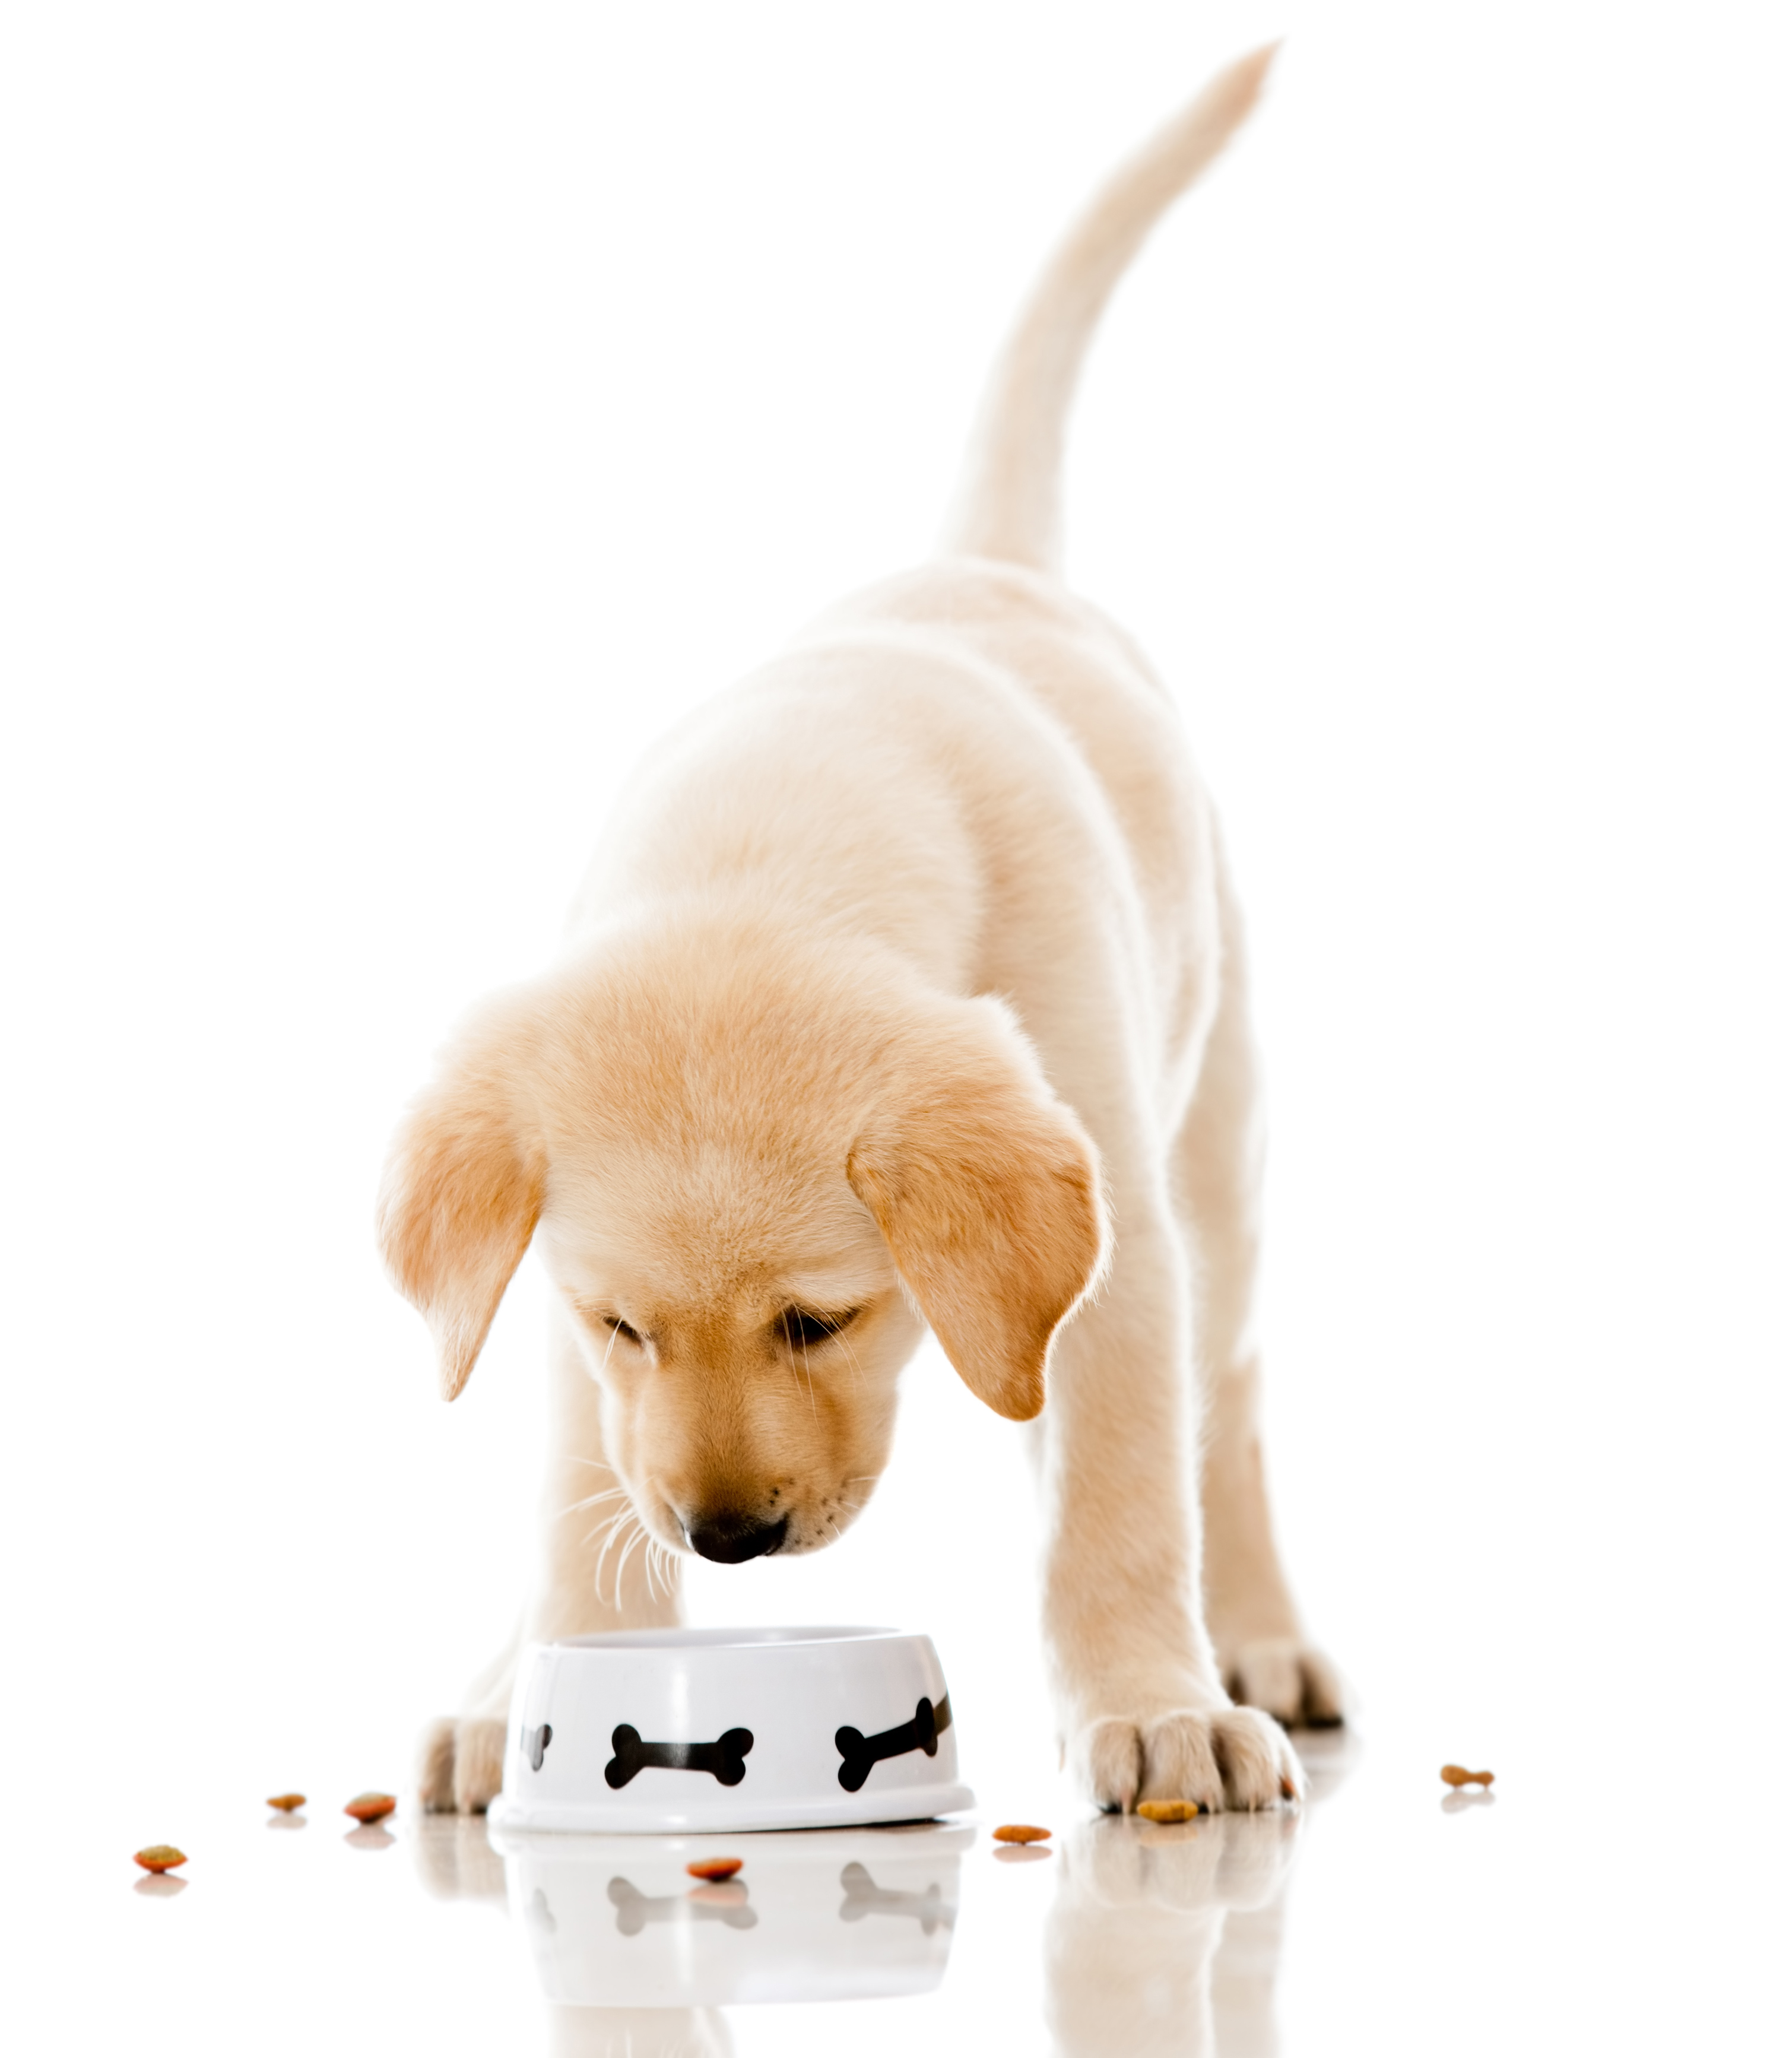 Cute puppy eating dog food - isolated over a white background-2